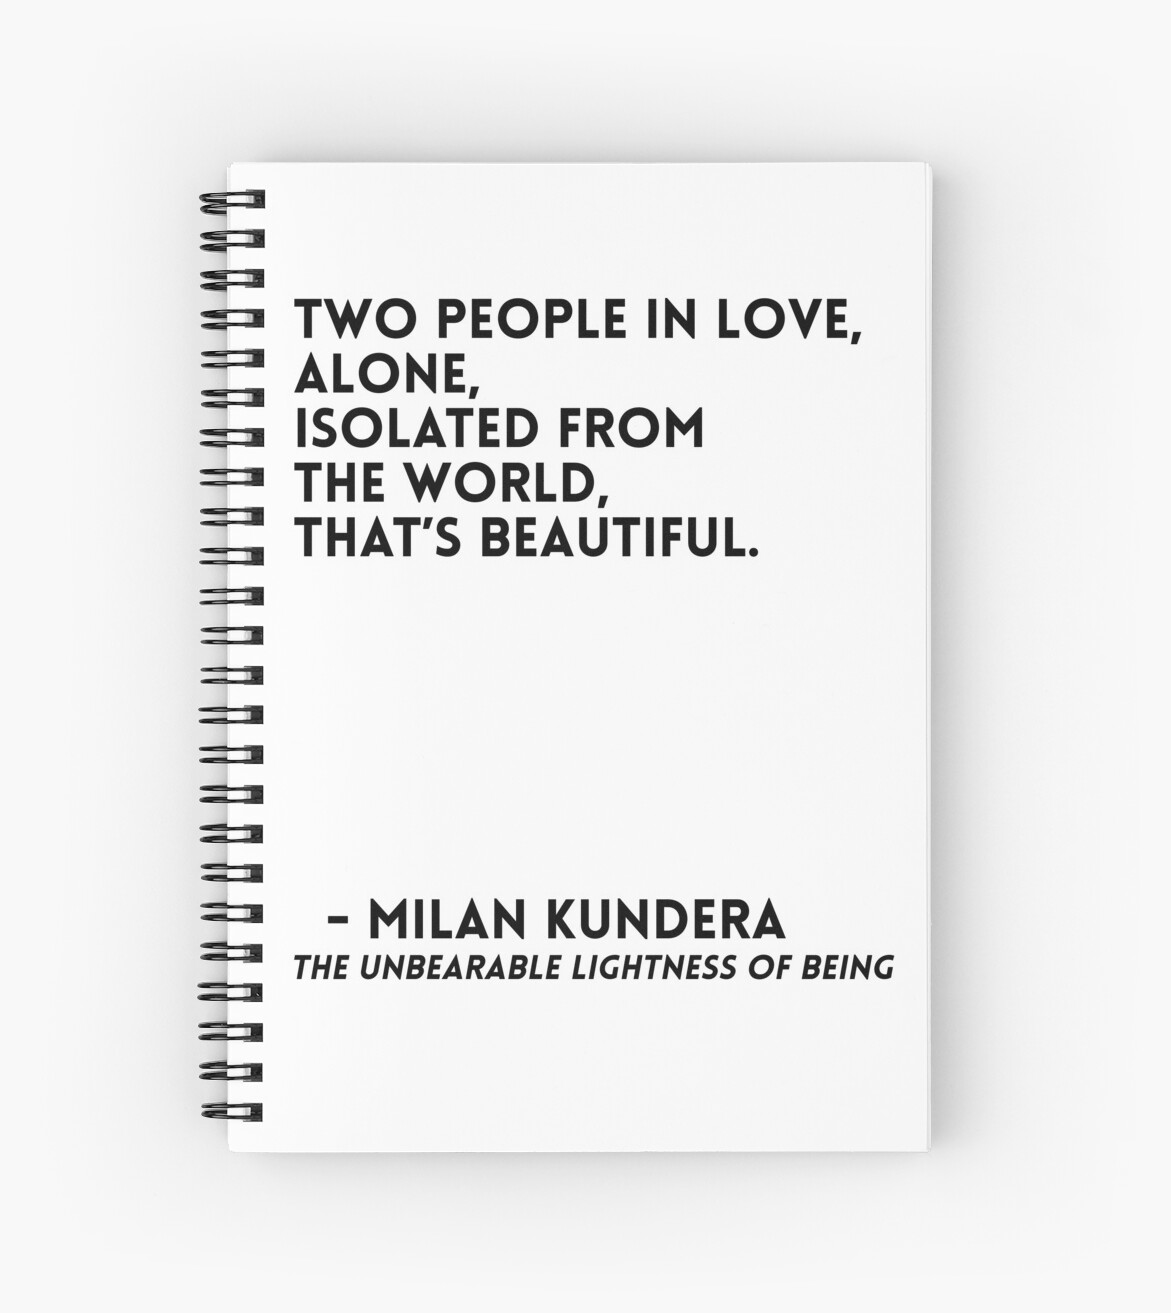 Quotes and sayings of Milan Kundera